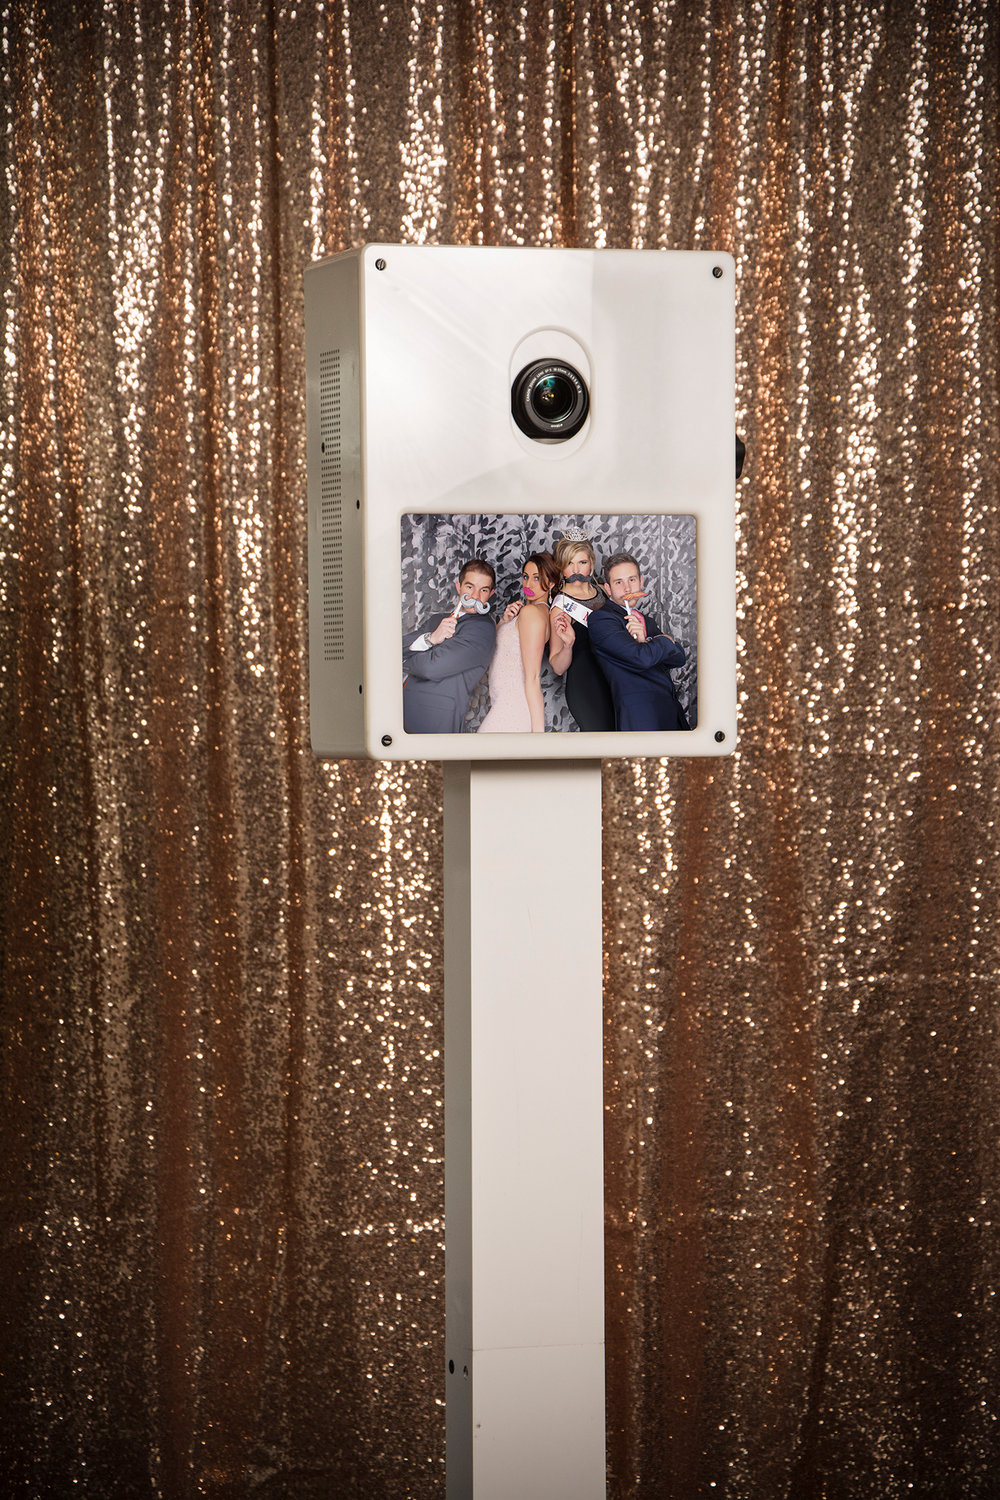 open-air-photo-booth-2.jpg